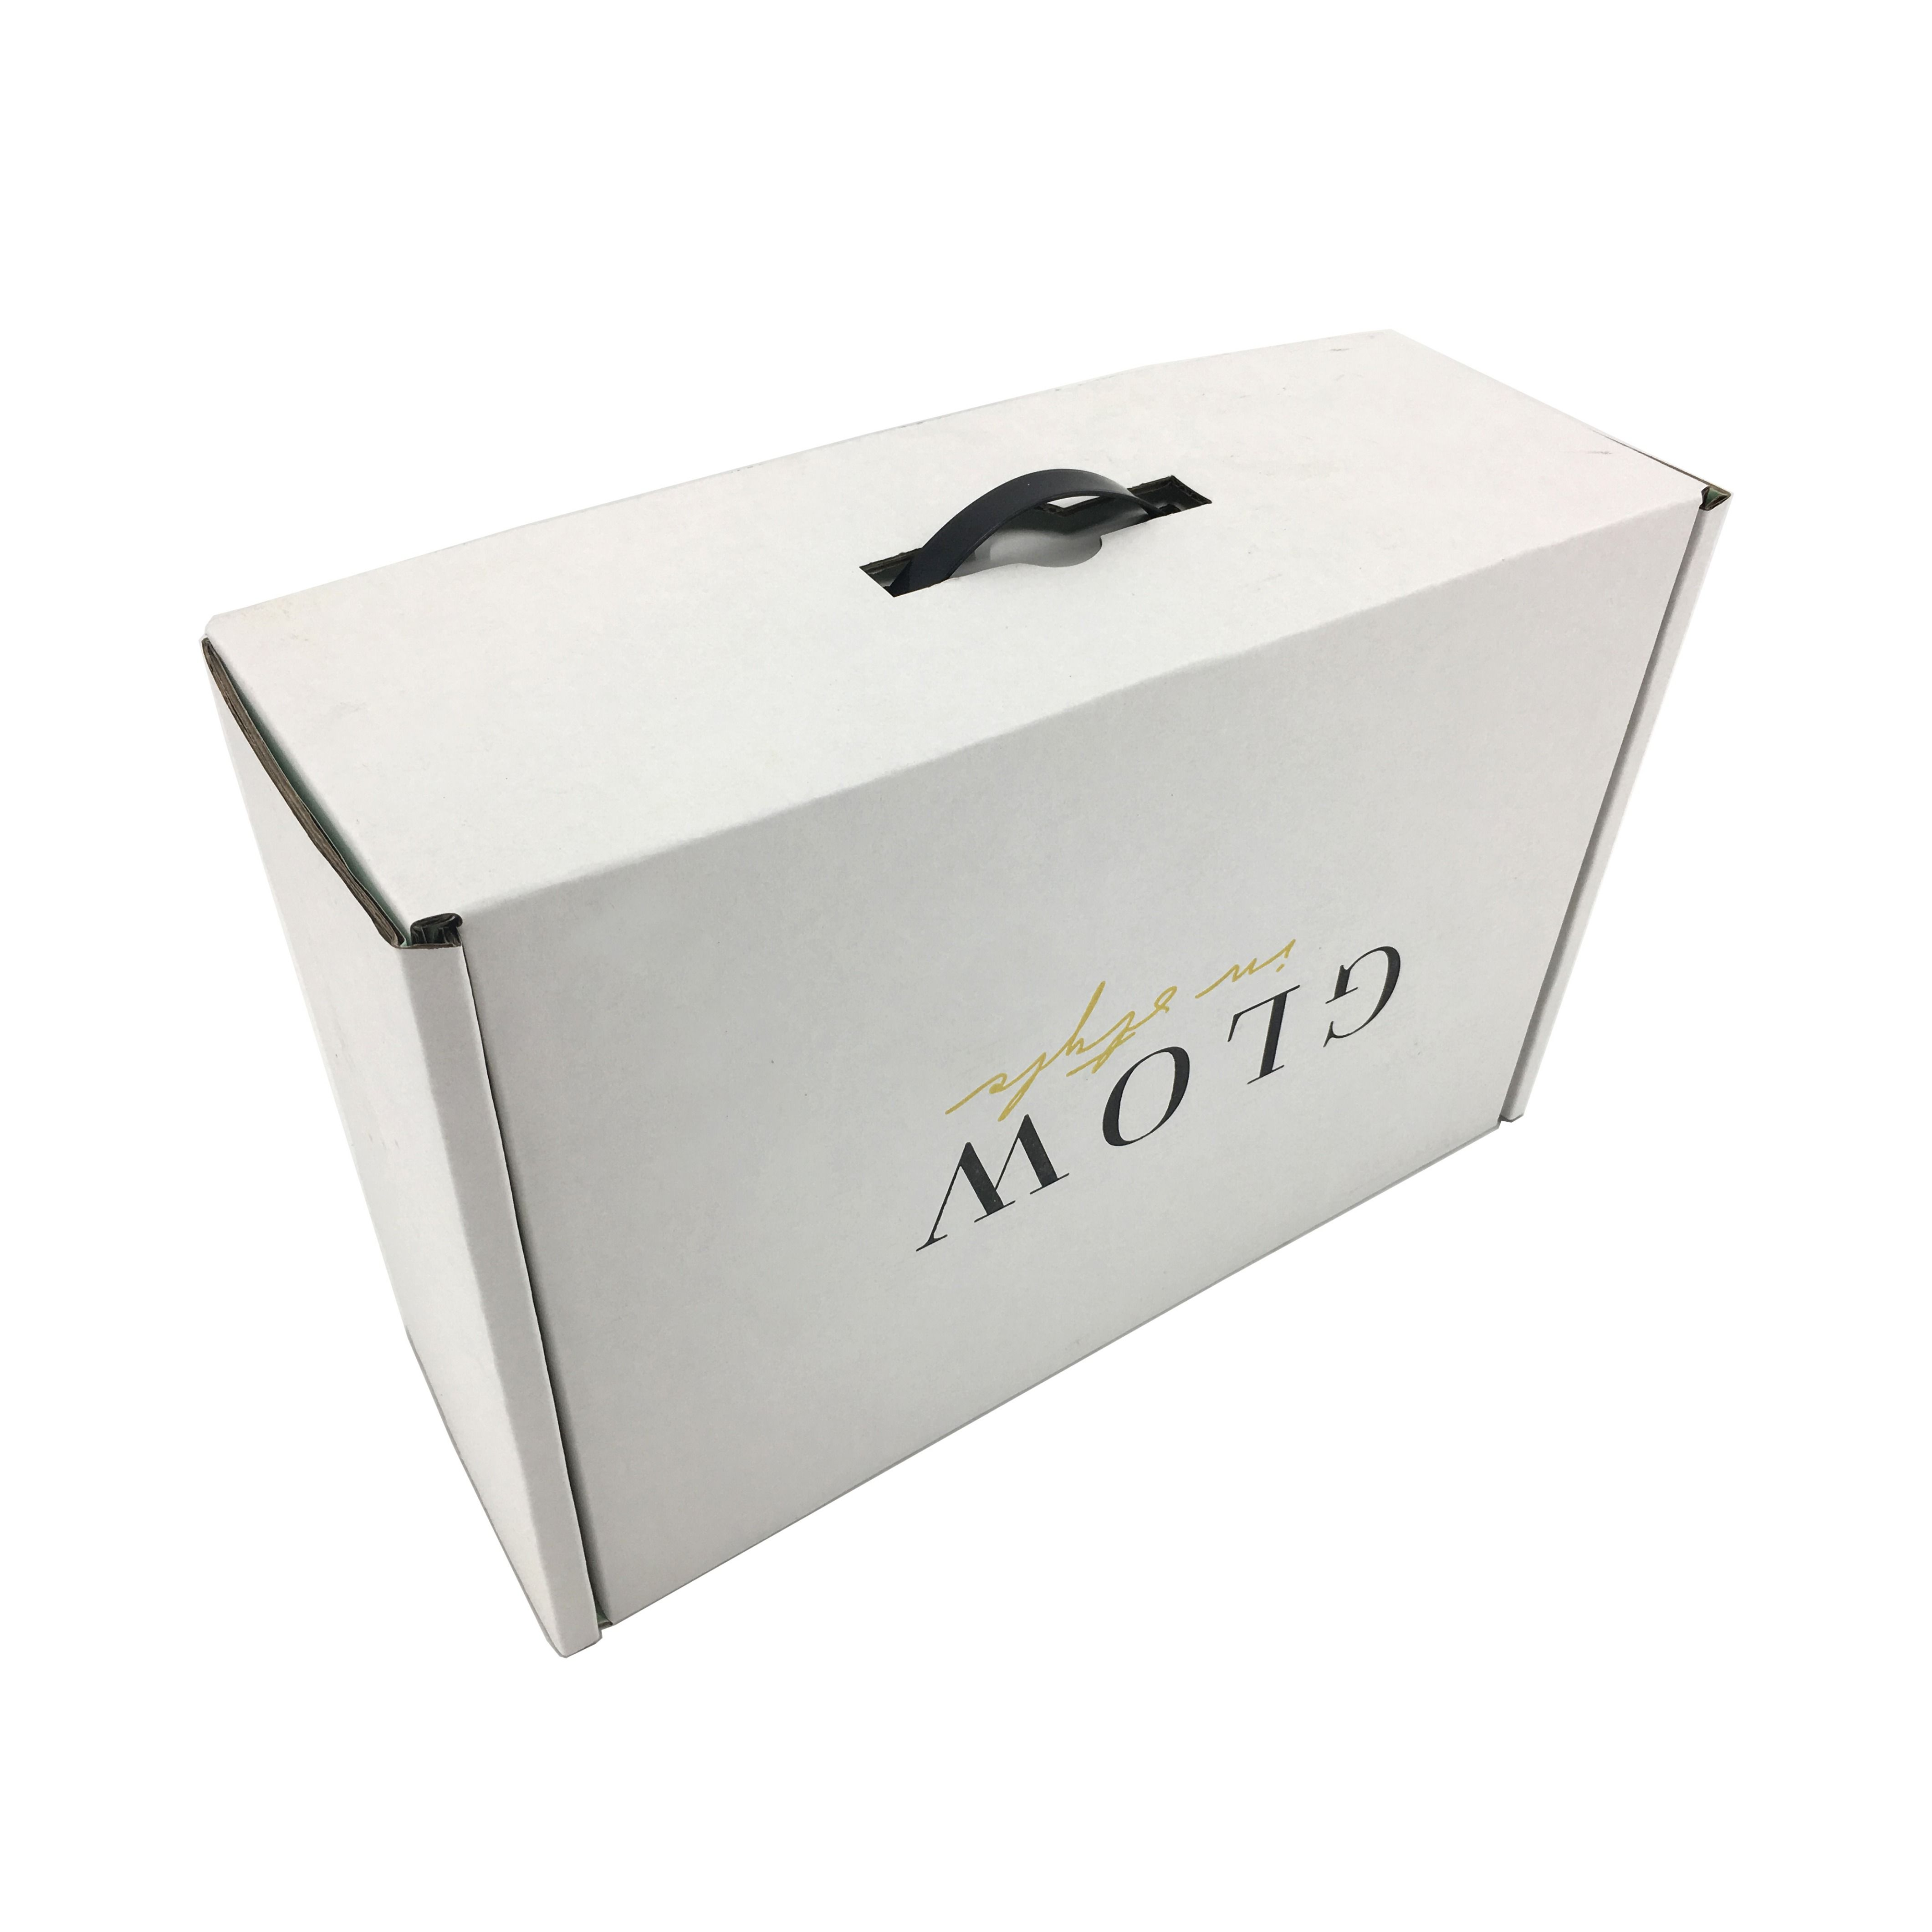 Custom Apparel Packaging Boxes With Plastic Handle Custom Printed Boxes Custom Boxes Paper Box Template